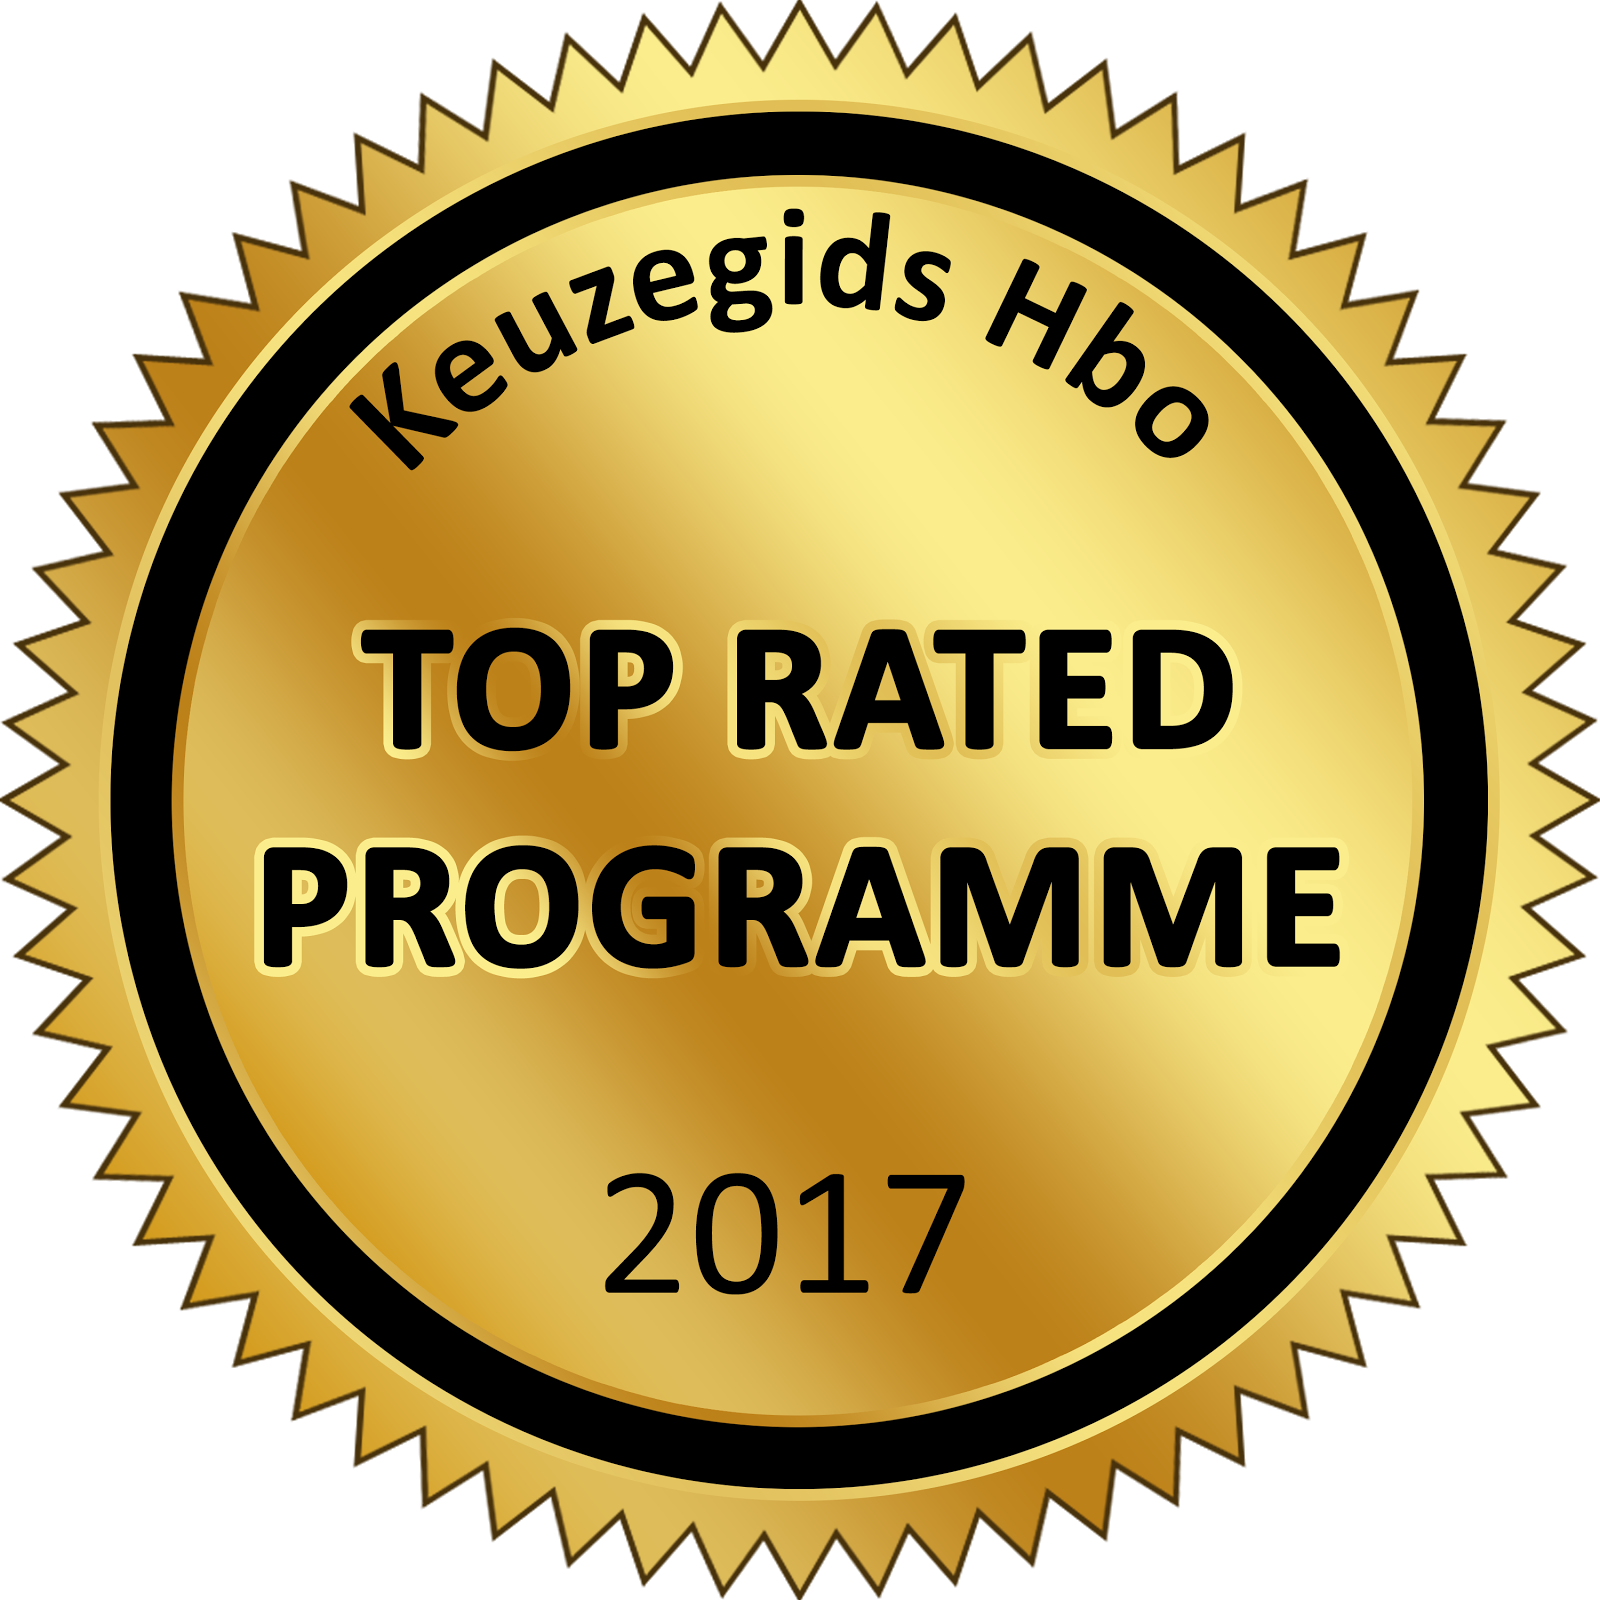 Top Rated Programme 2017